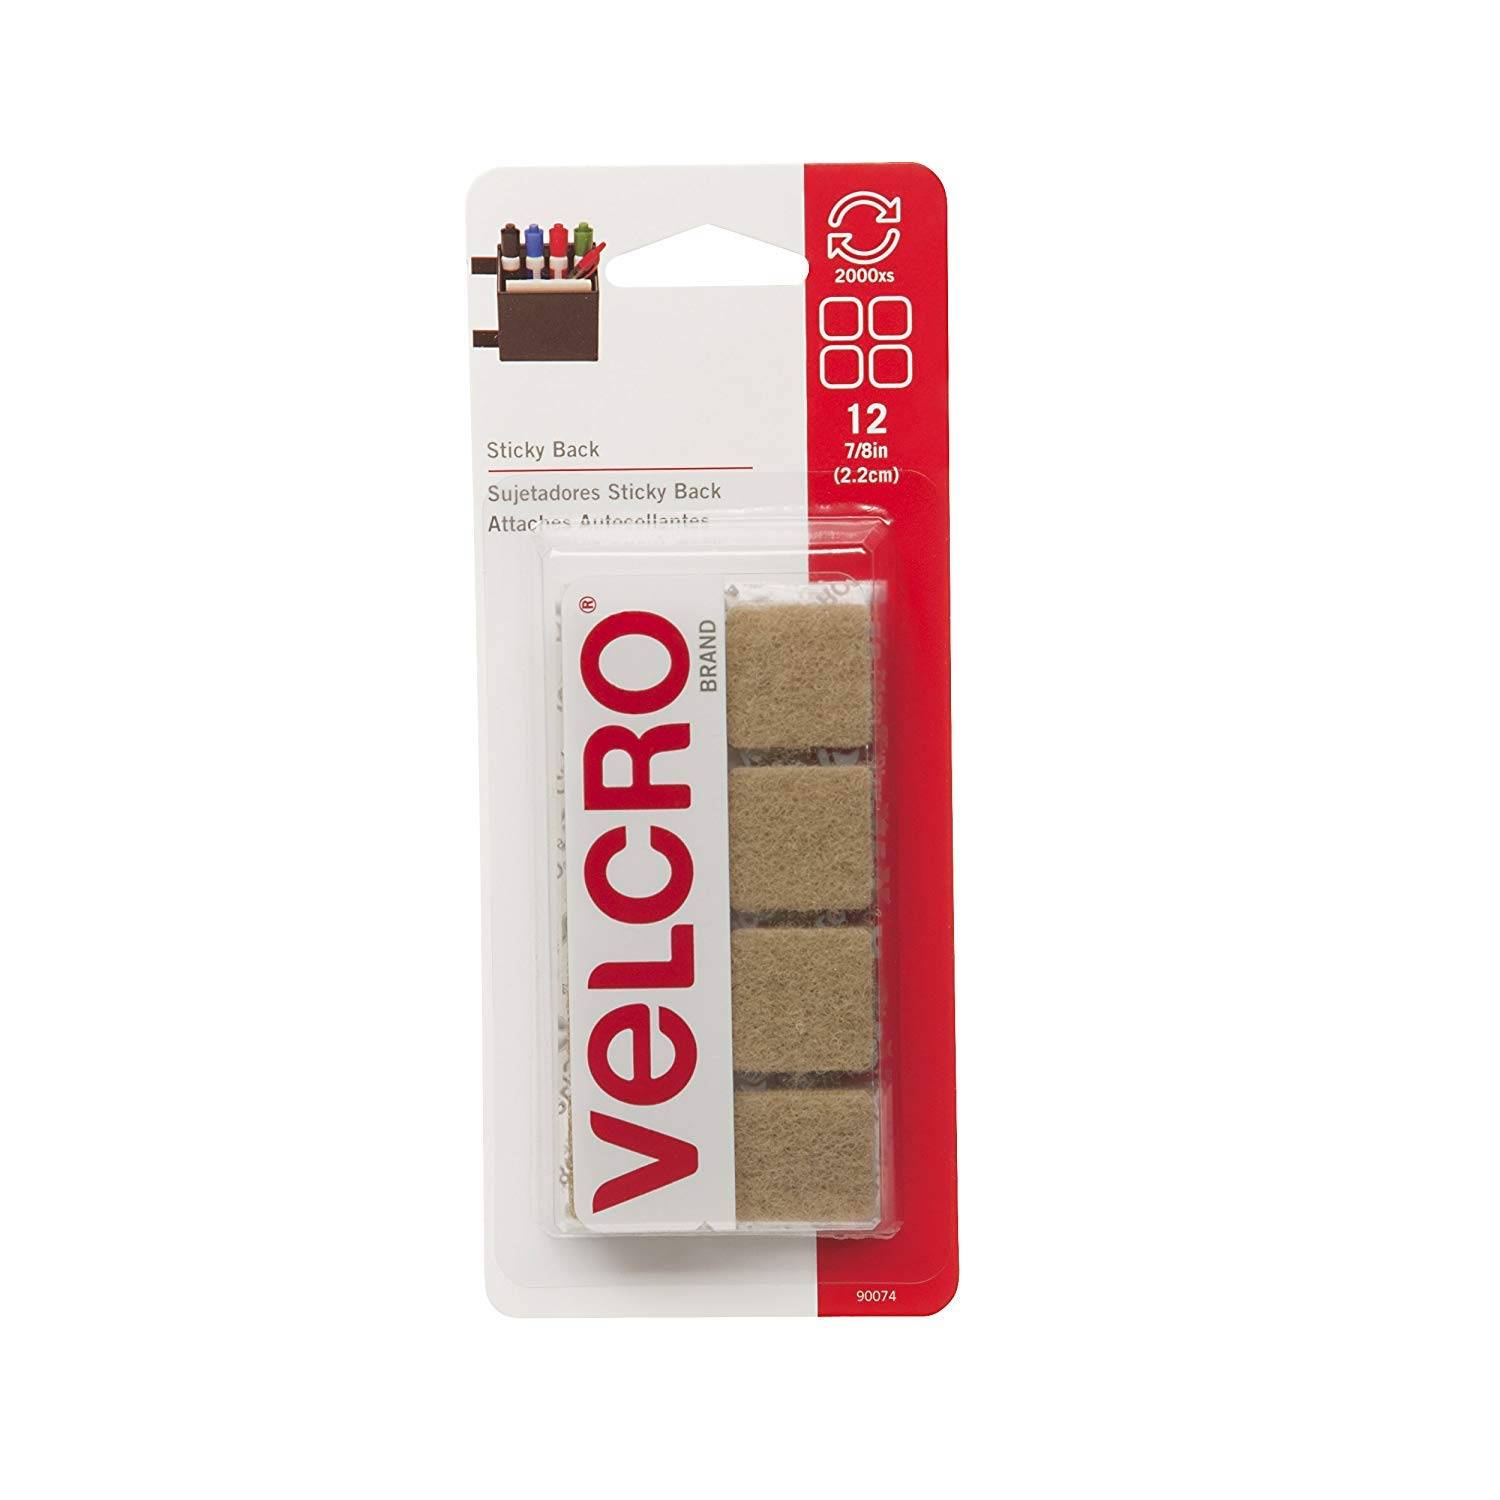 Amazon.com : VELCRO Brand - Sticky Back Hook and Loop Fasteners | Perfect for Home or Office | 7/8in Squares | Pack of 36 | Beige : Office Products